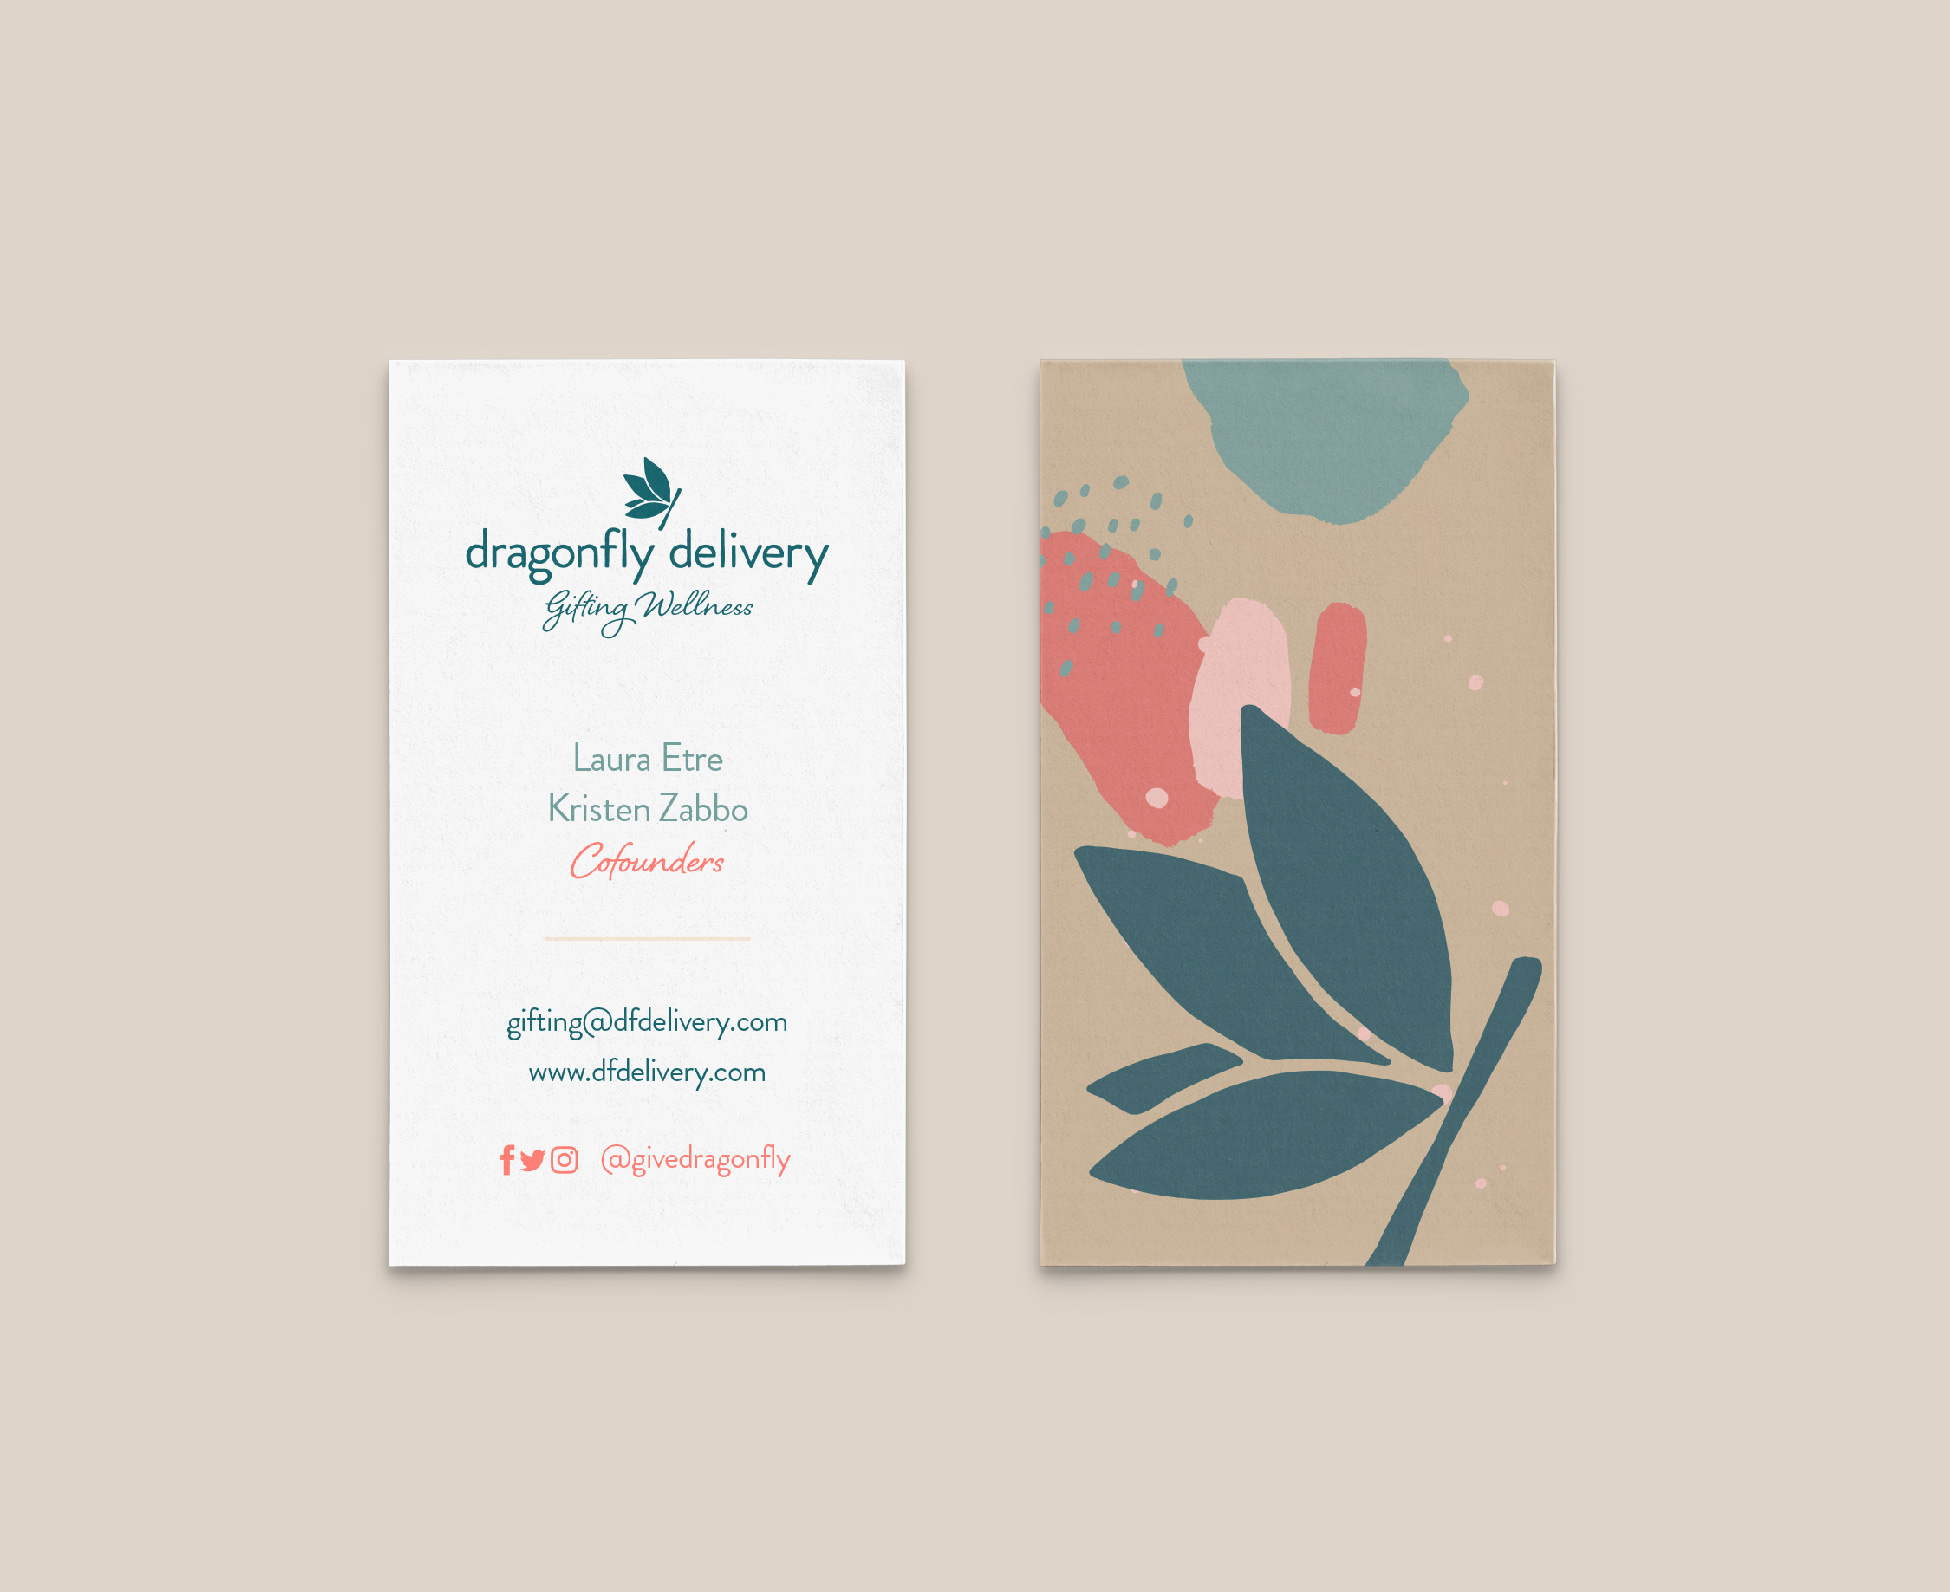 Dragonfly Delivery Business Card Design